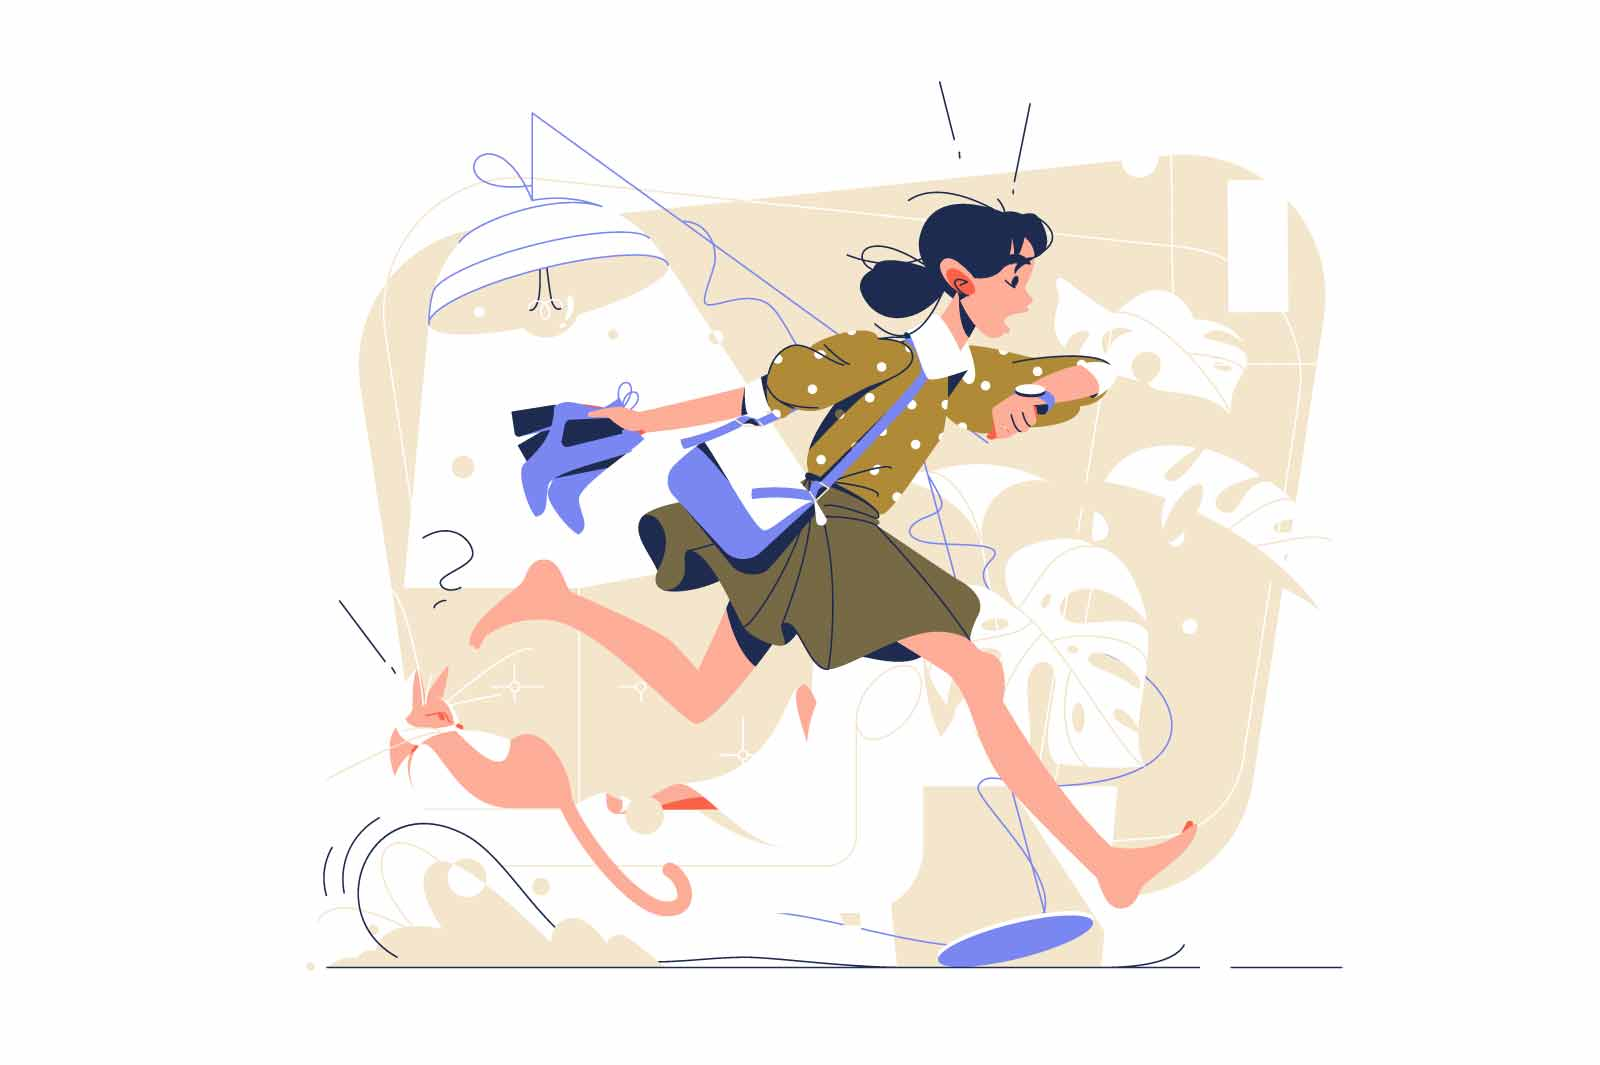 Girl run in hurry to work vector illustration. Jogging adult character running down street barefoot flat style. Rush, late, hectic concept